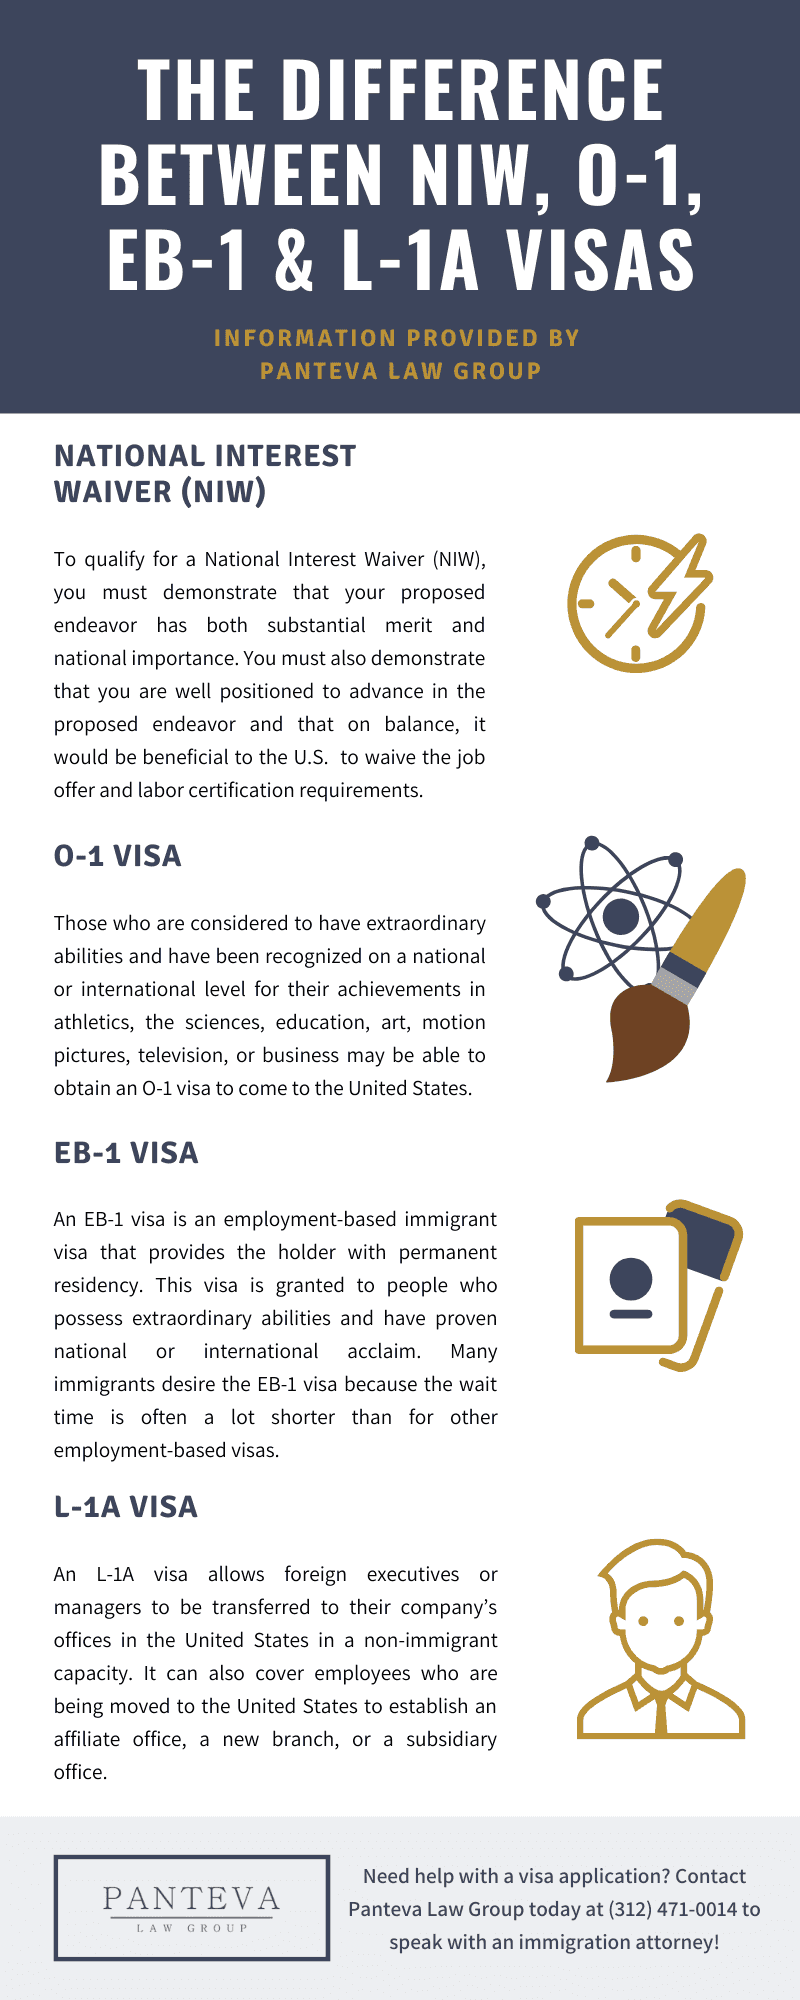 The Difference Between NIW, O-1, EB-1 & L-1A Visas